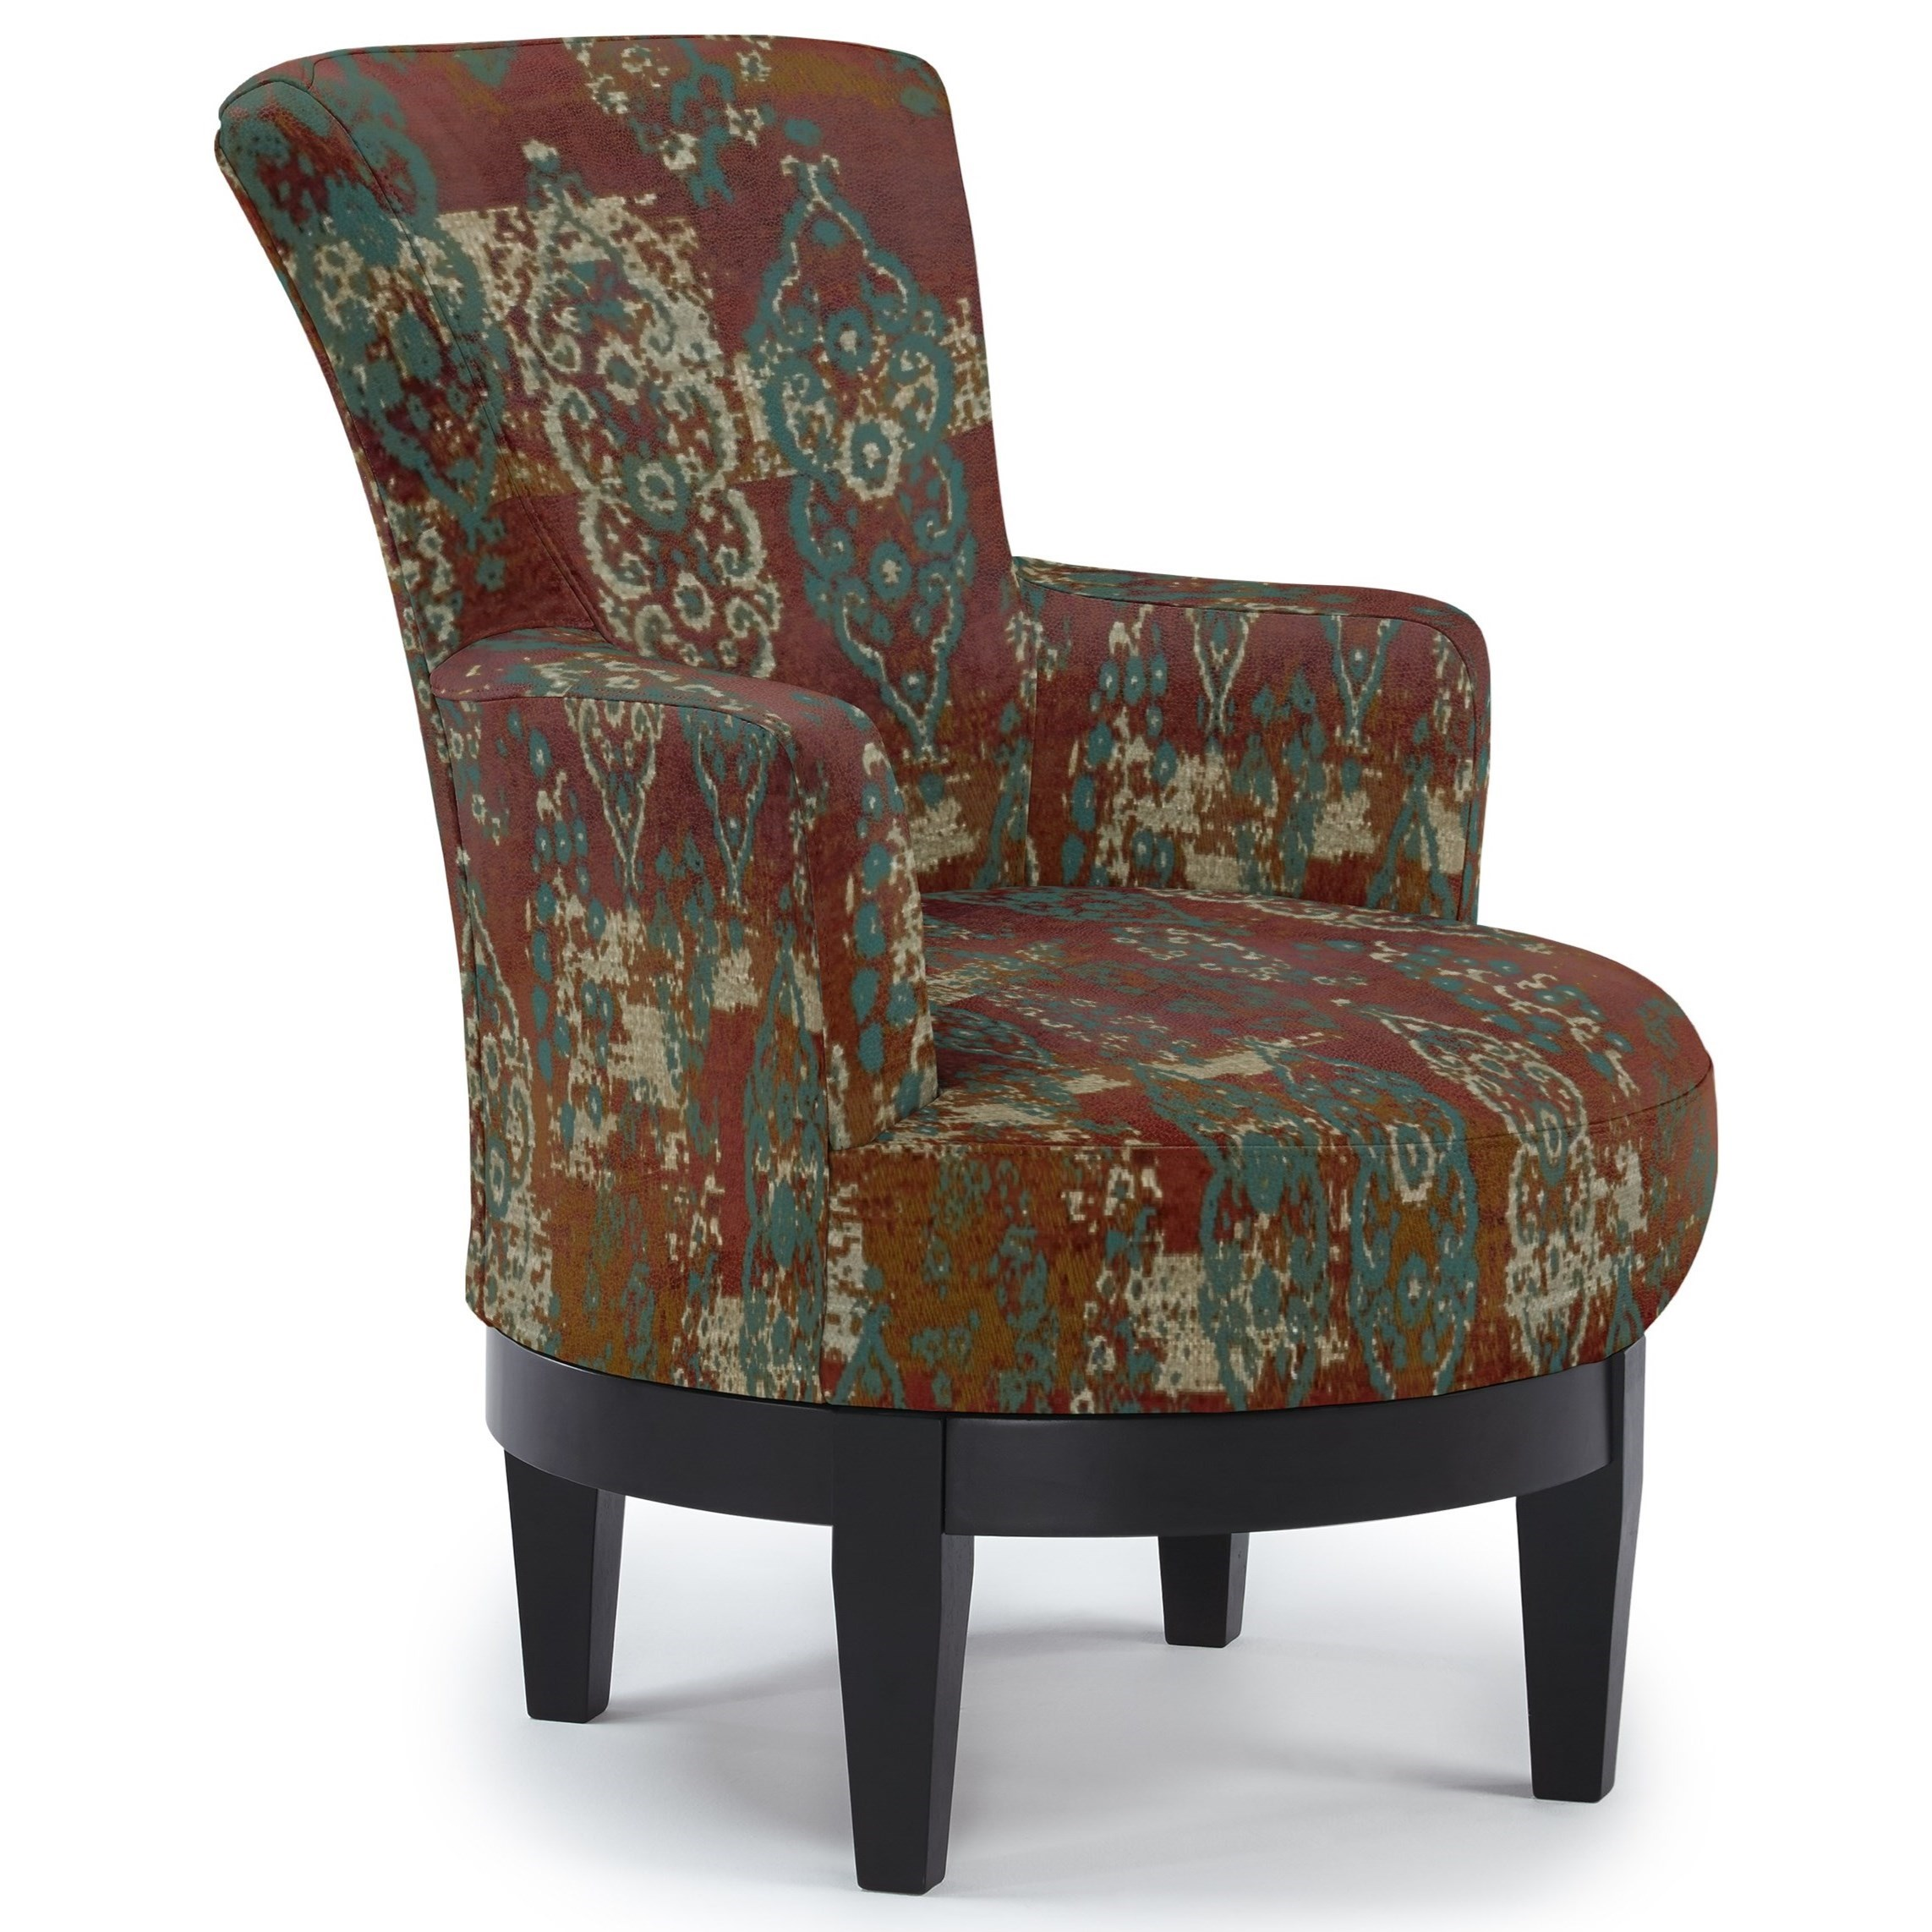 Chairs - Swivel Barrel Swivel Chair by Best Home Furnishings at Coconis Furniture & Mattress 1st